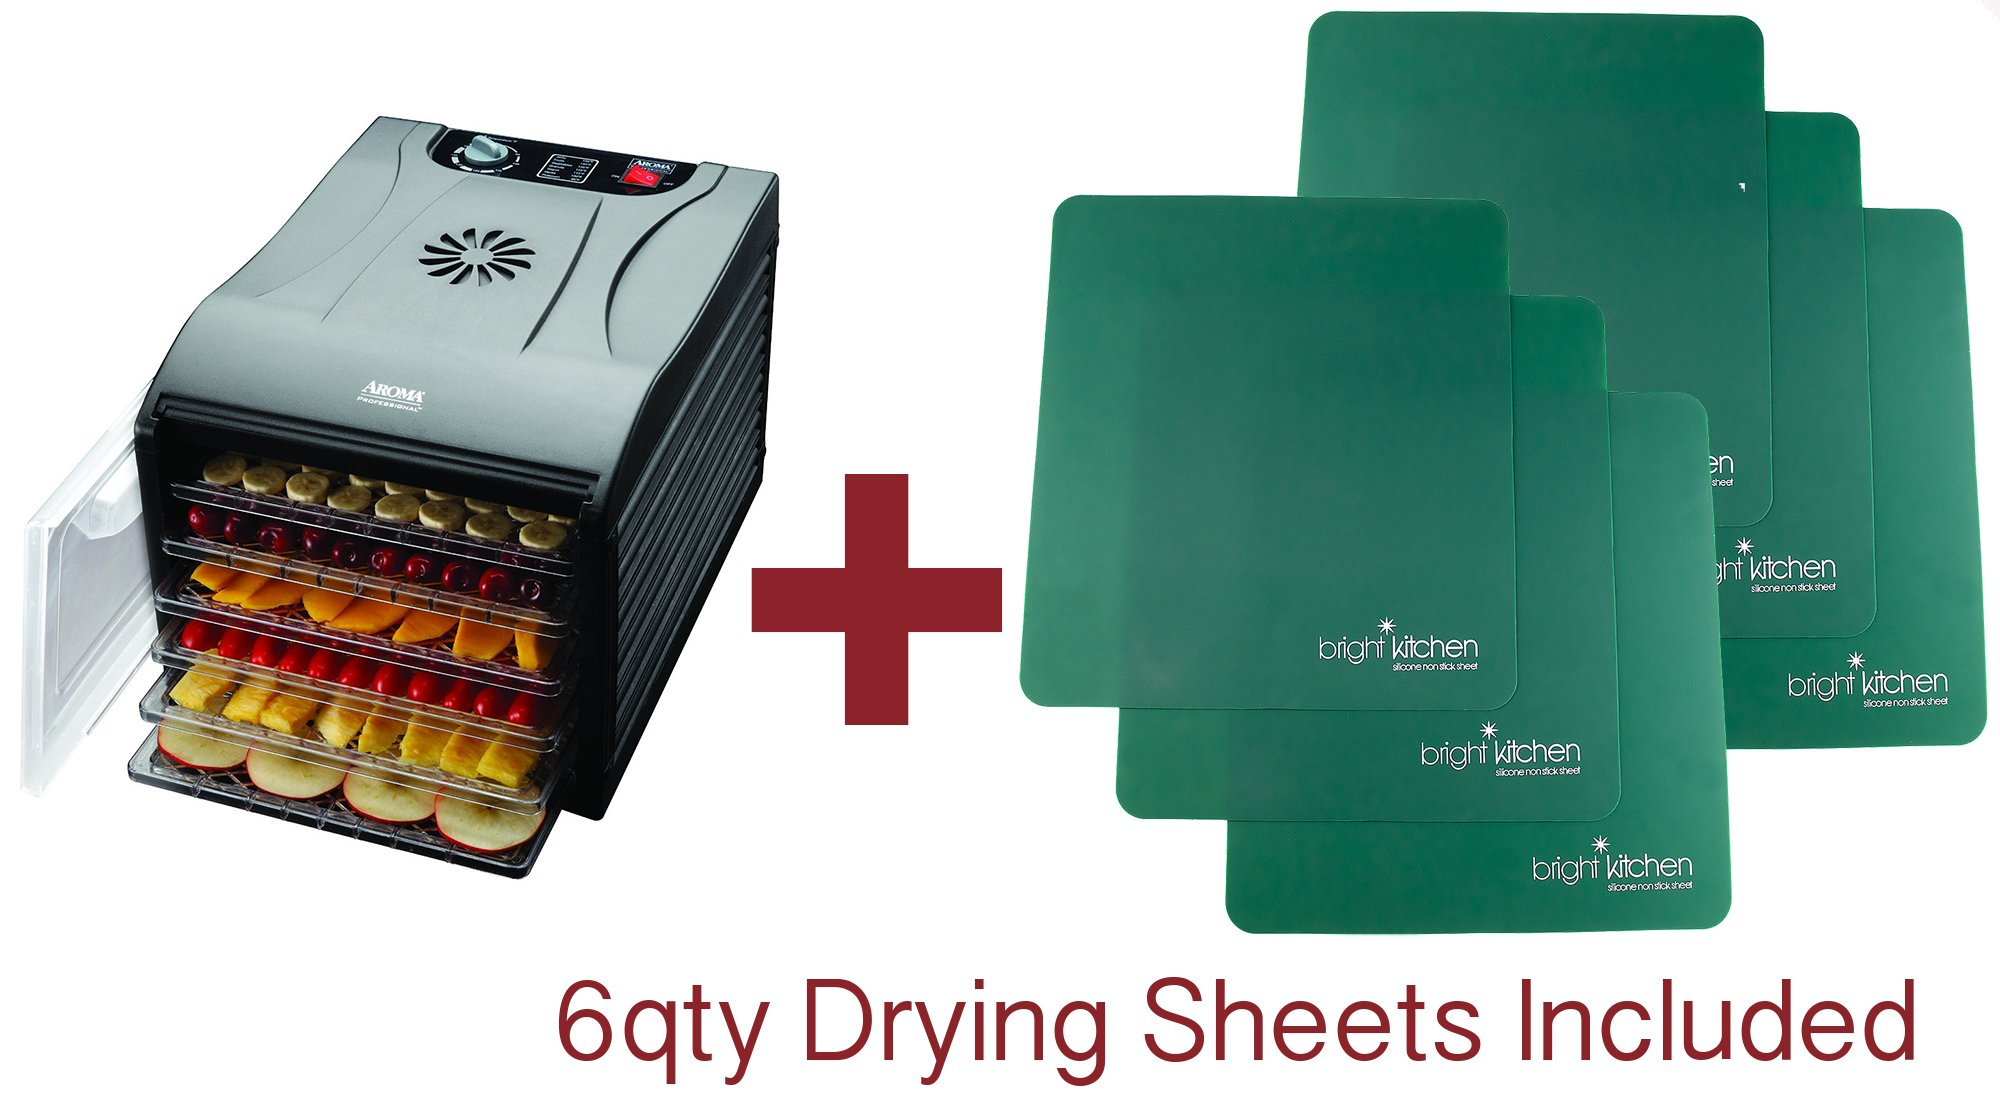 Aroma Professional Dehydrator BONUS PACKAGE WITH 6 qty Non Stick Silicone Drying Sheets 6 Tray Black